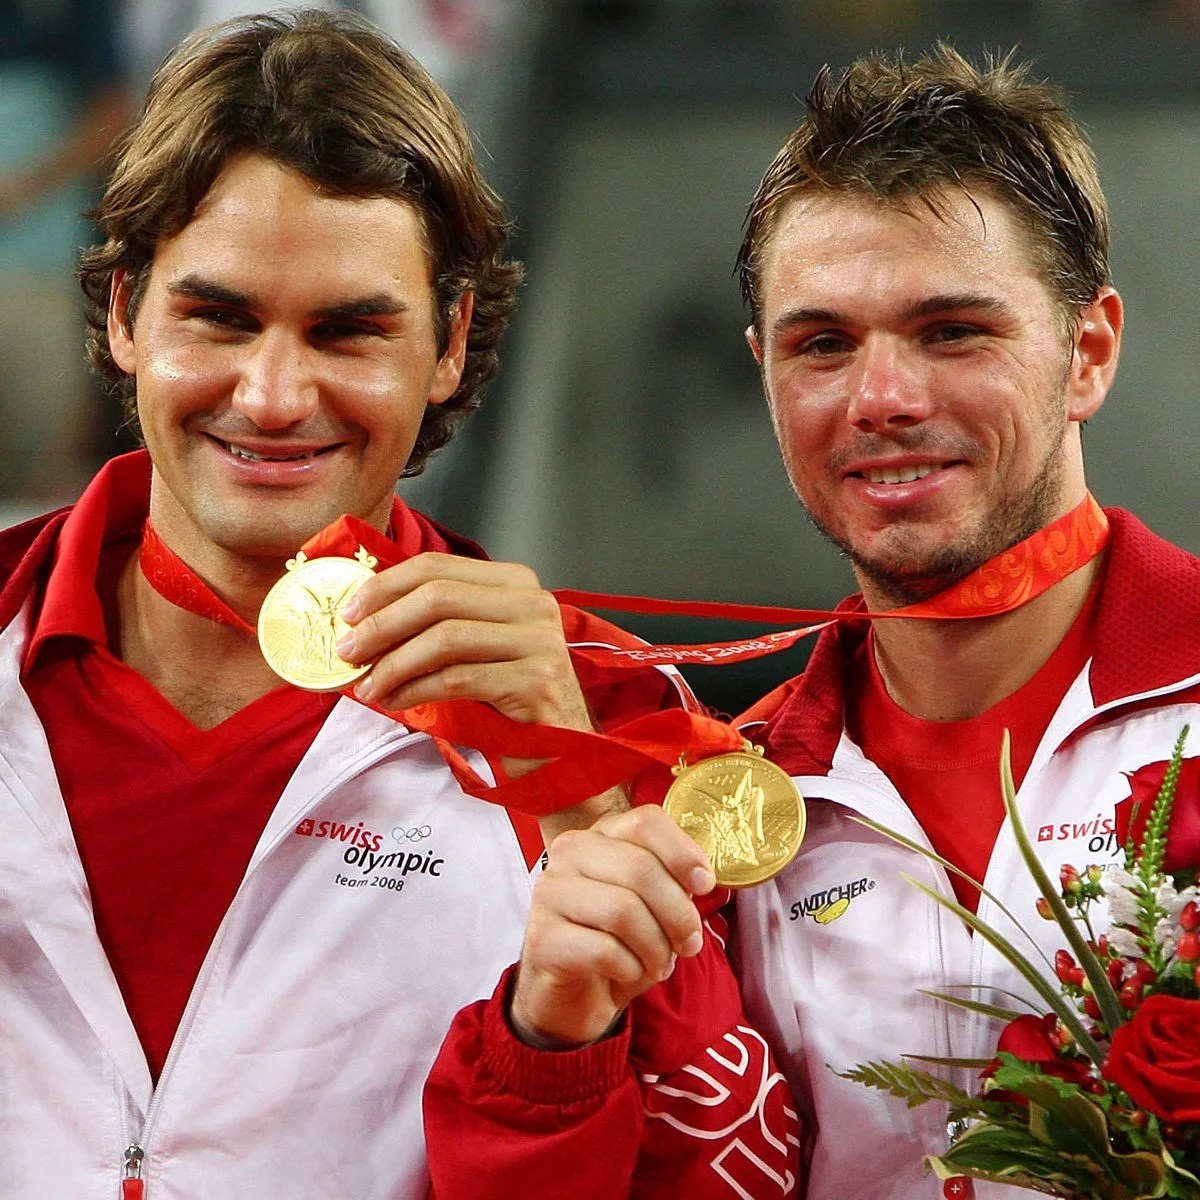 """Photo of """"He won it only thanks to Roger Federer"""" – Benoit Paire mocks Stan Wawrinka's Olympic gold – EssentialSports"""